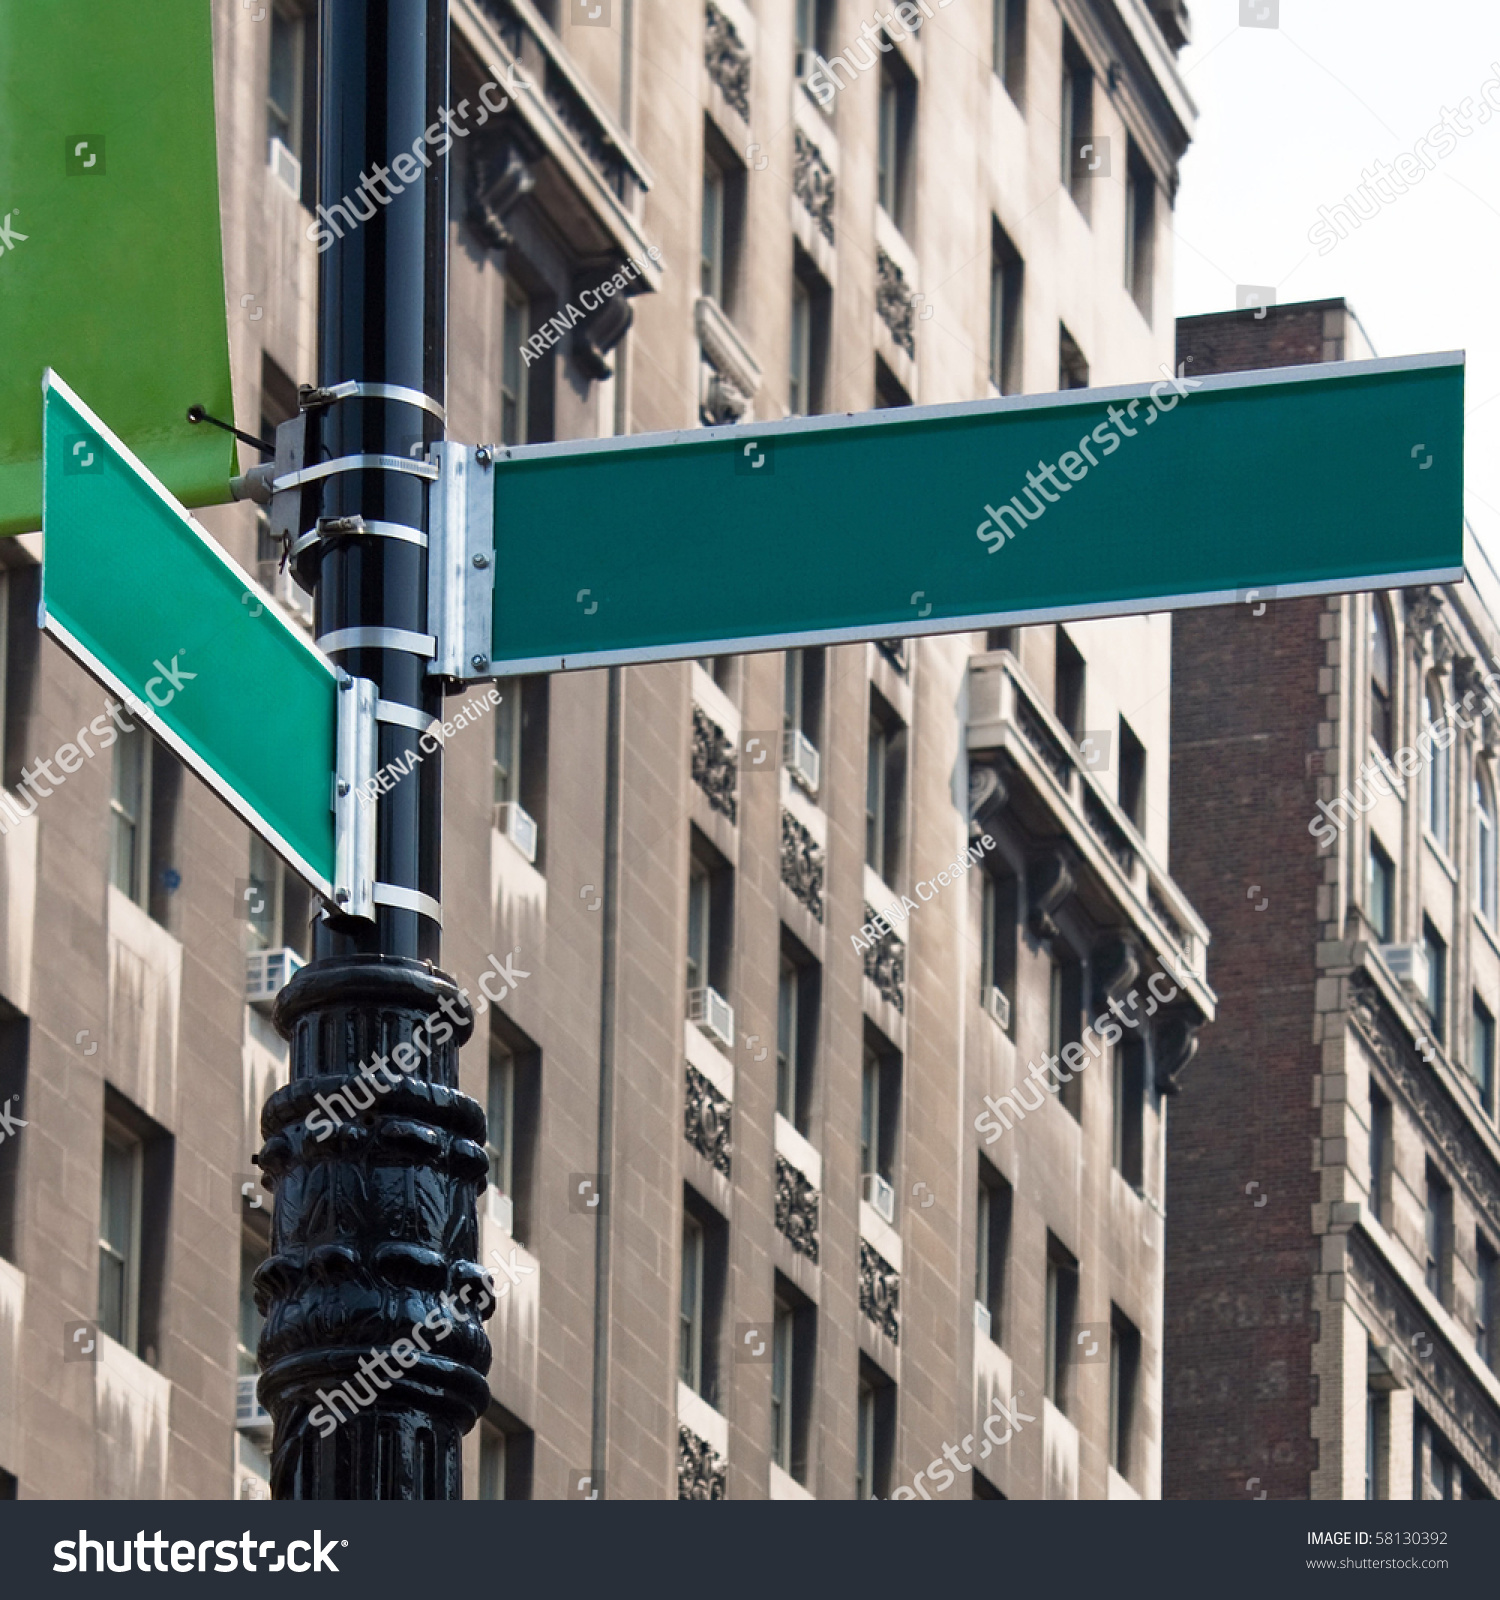 two blank green street signs on a post at the intersection